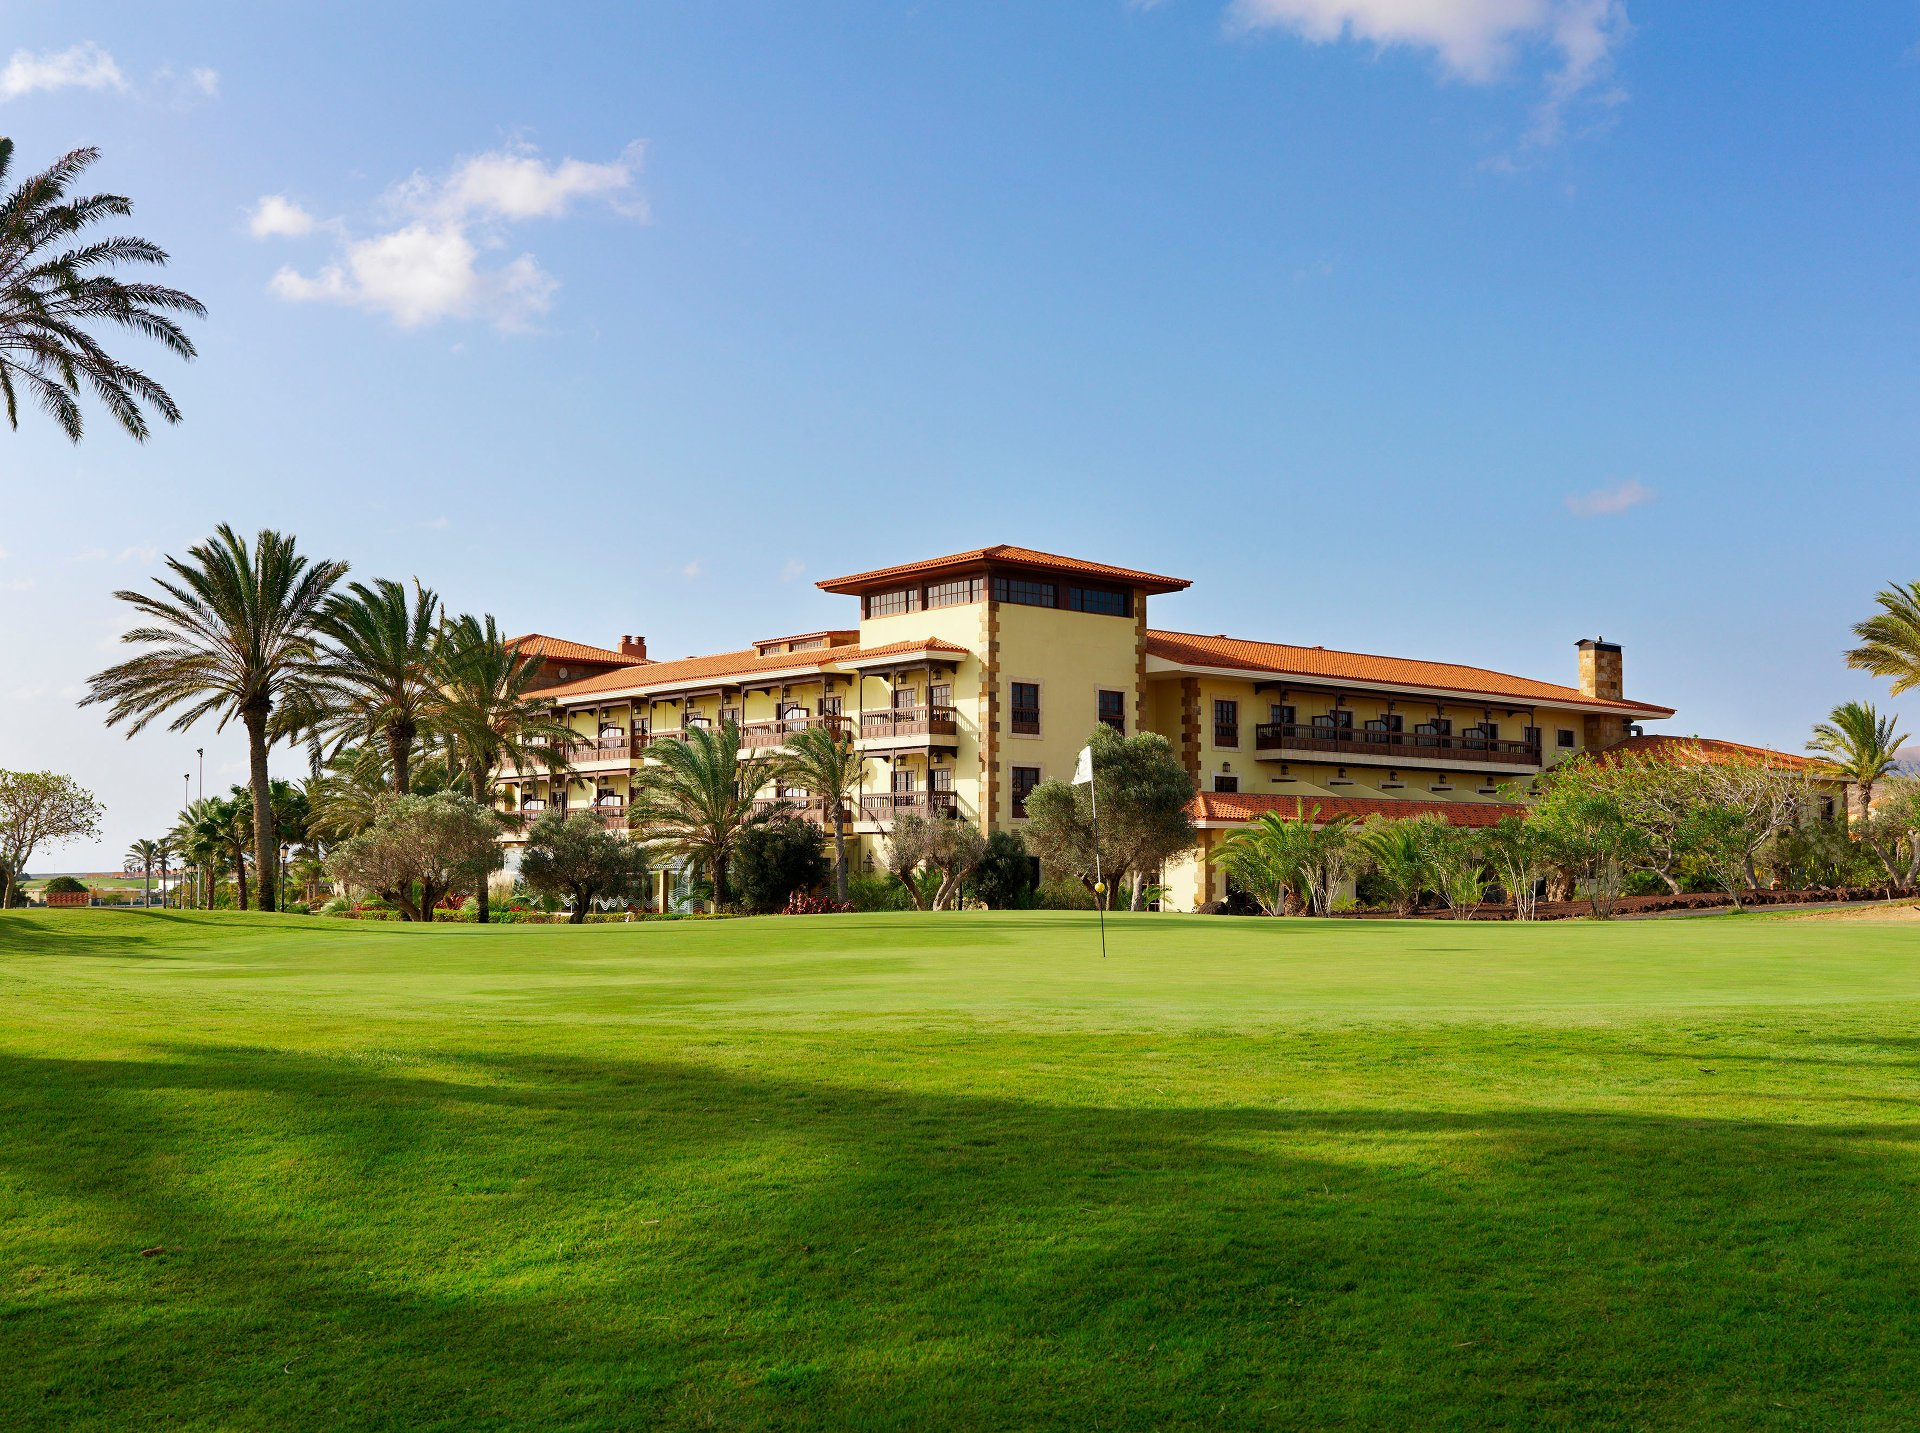 The exterior of the Elba Palace Golf & Vital Hotel